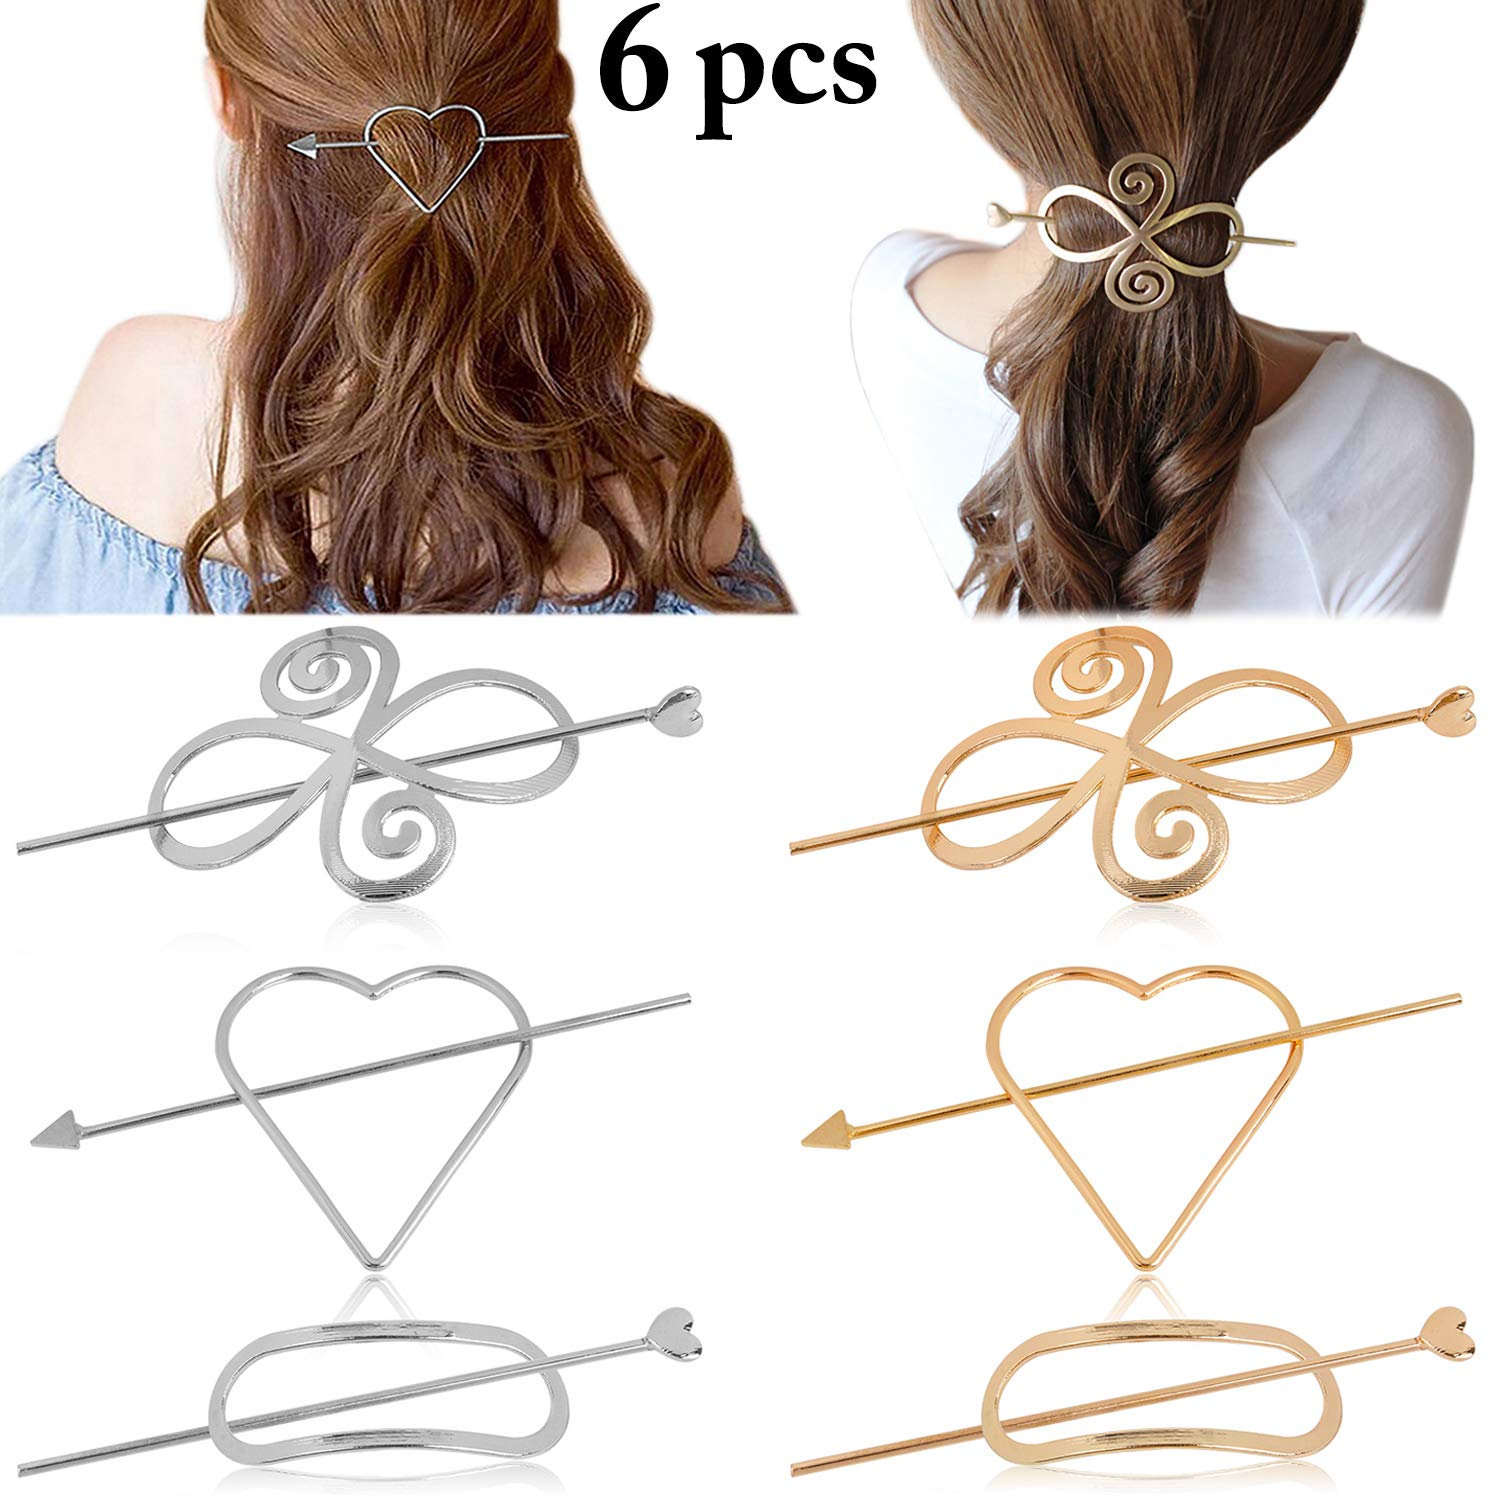 Love these hairpins